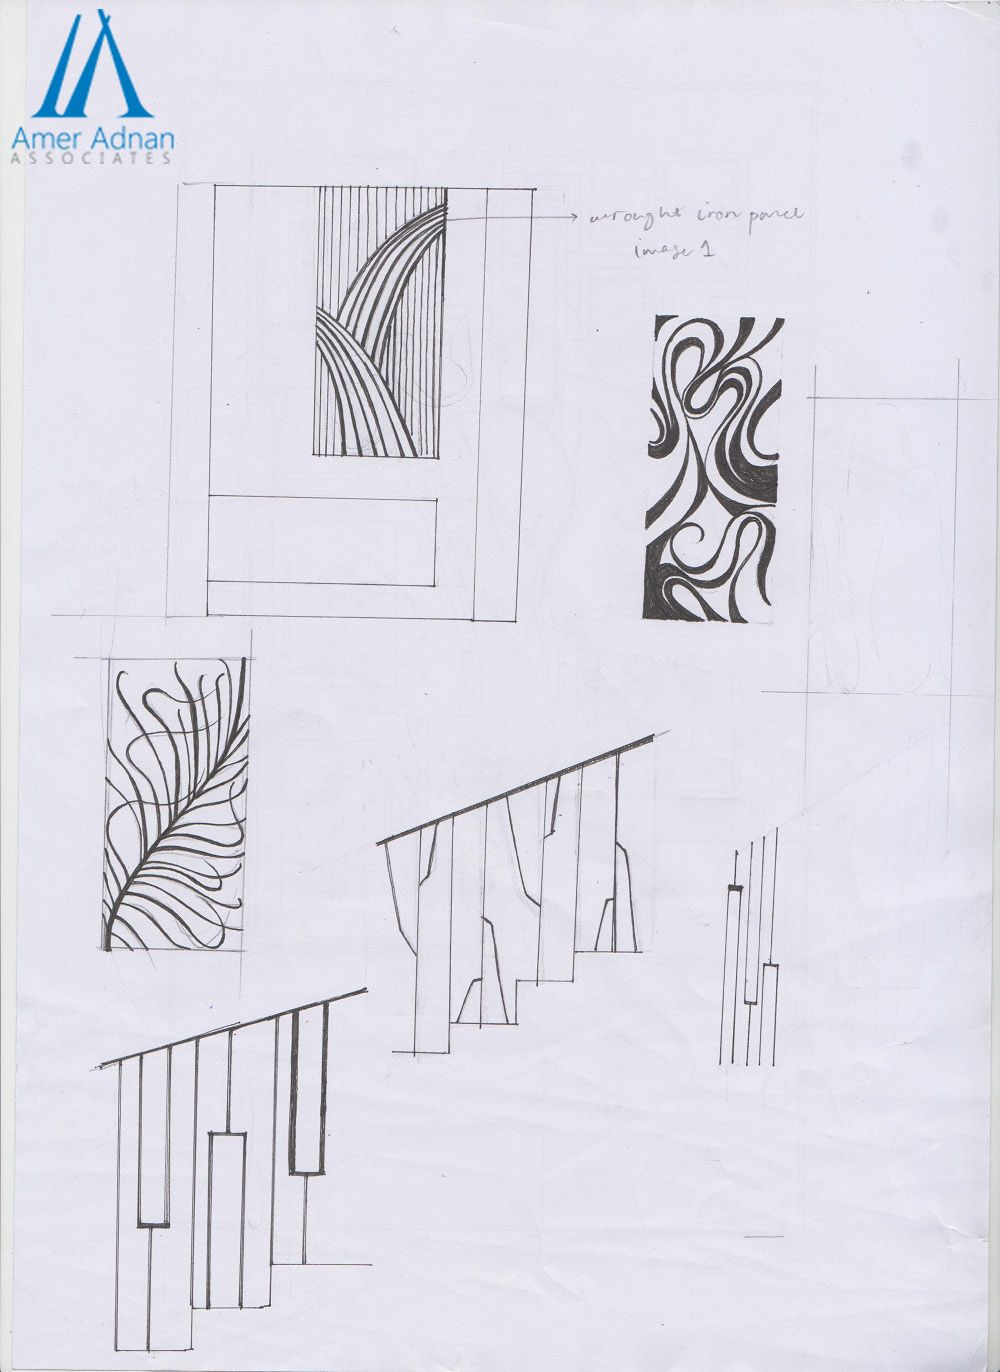 Tremendous wrought iron panels and grill sketches for your dream ...